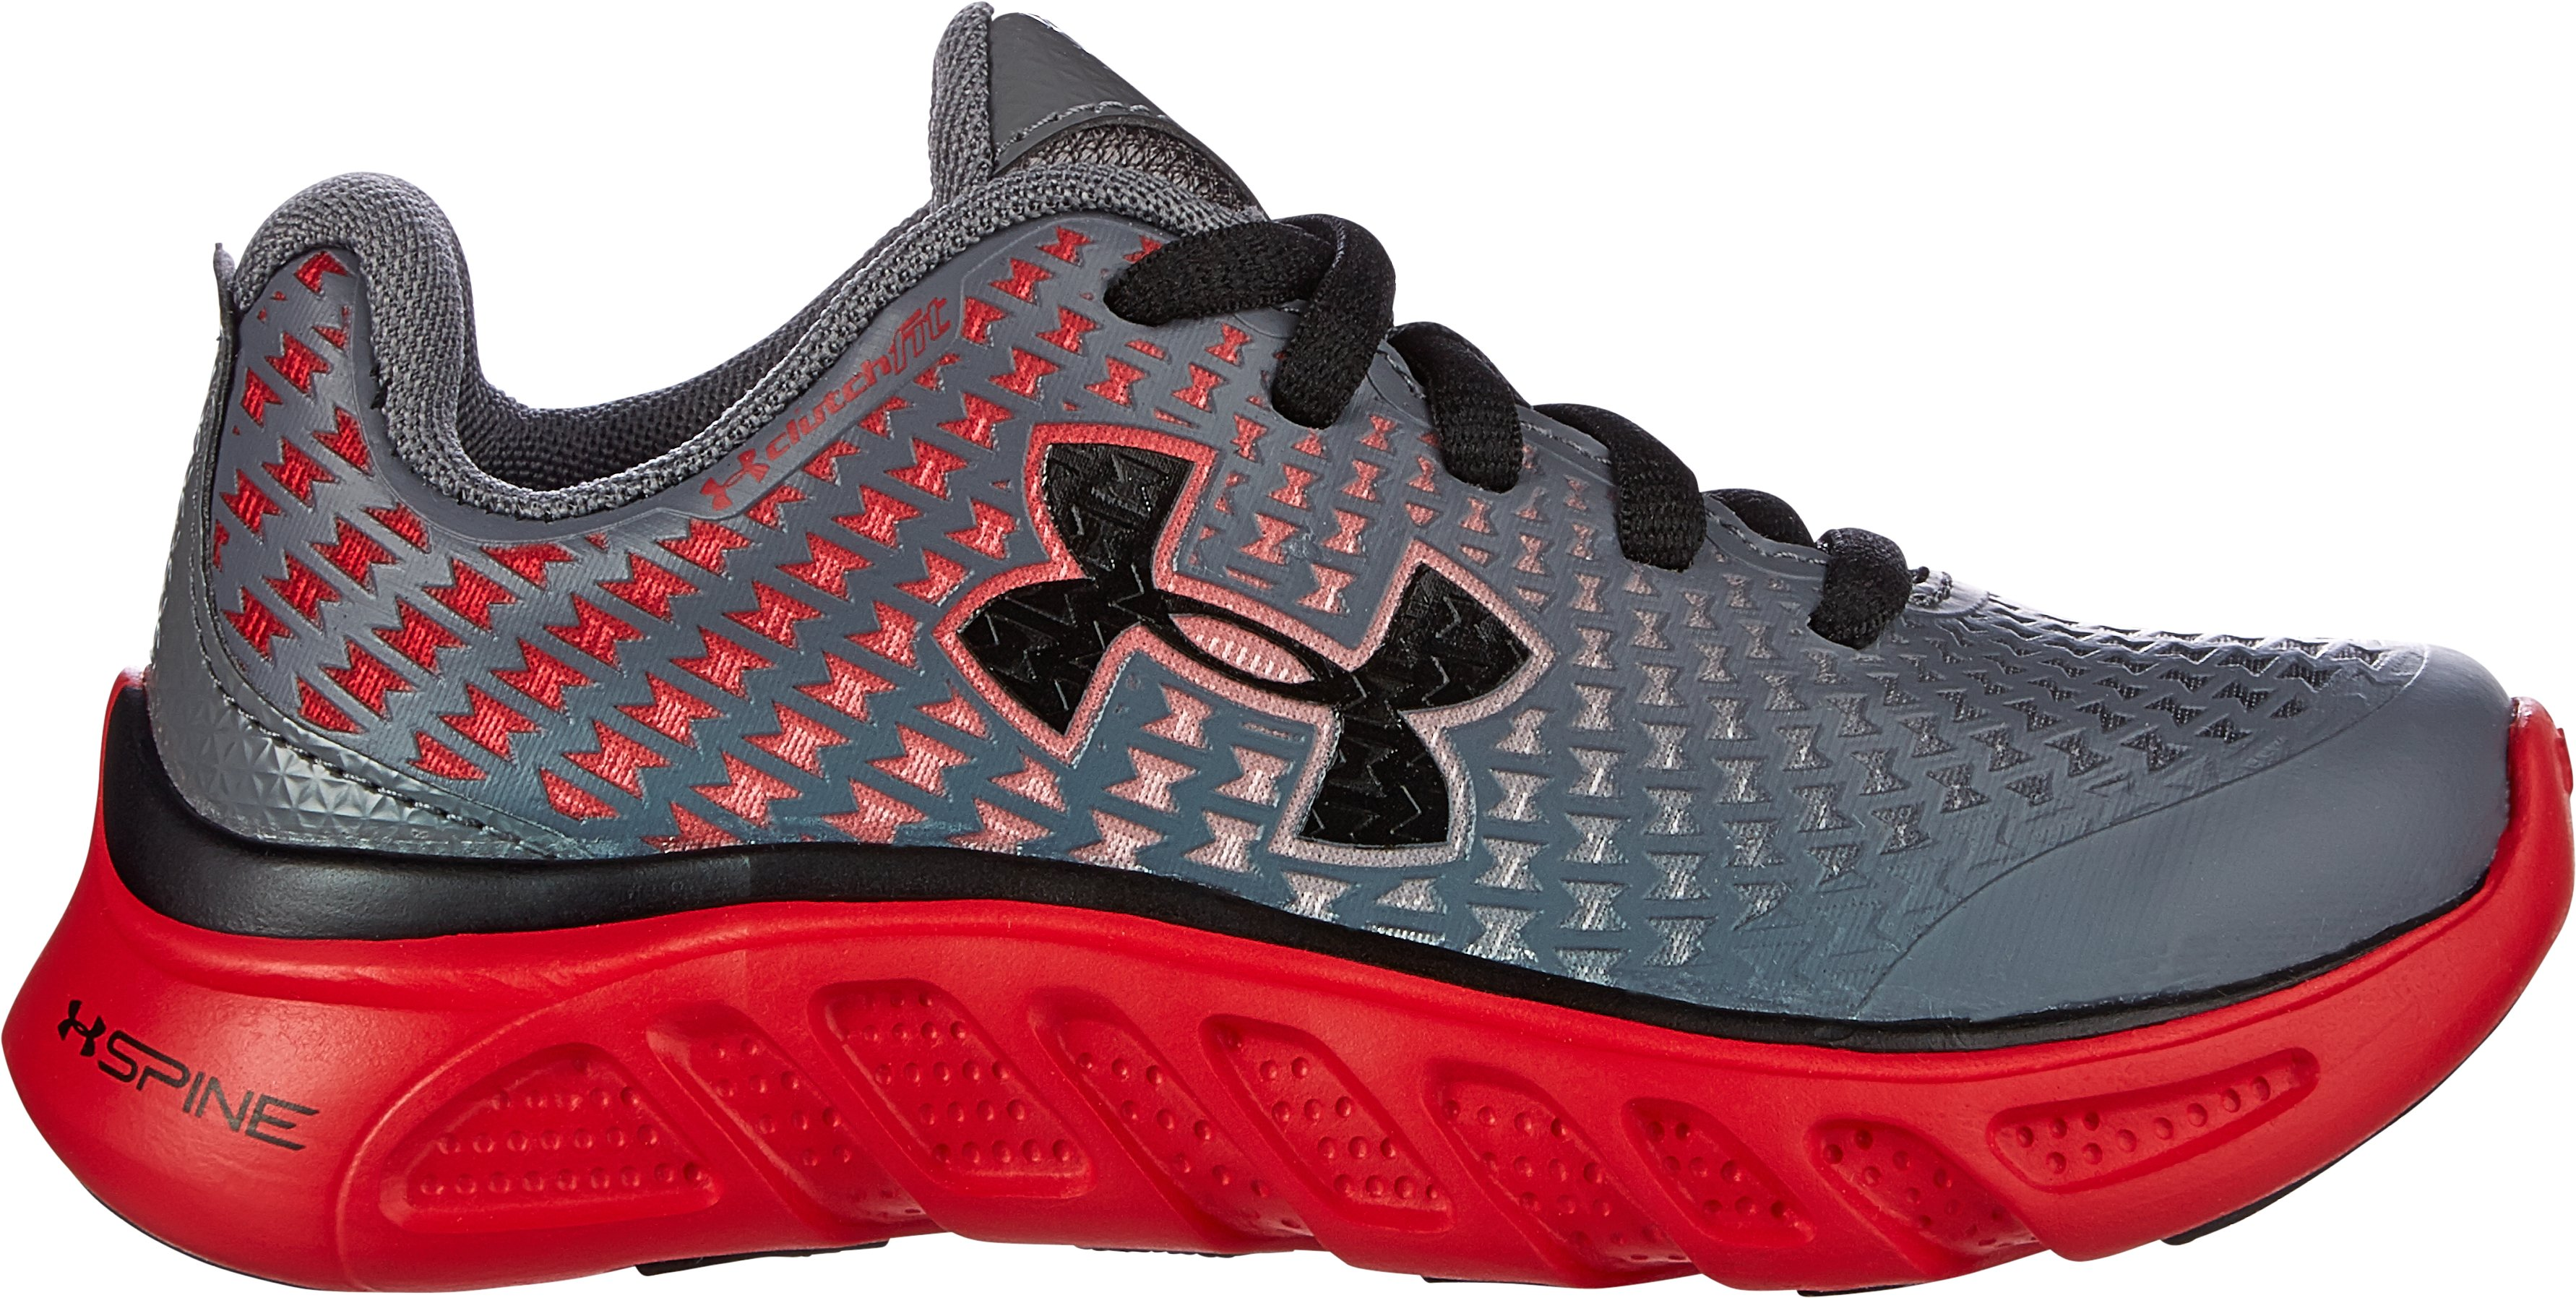 Boys' Pre-School UA Spine™ Clutch Shoes, Graphite